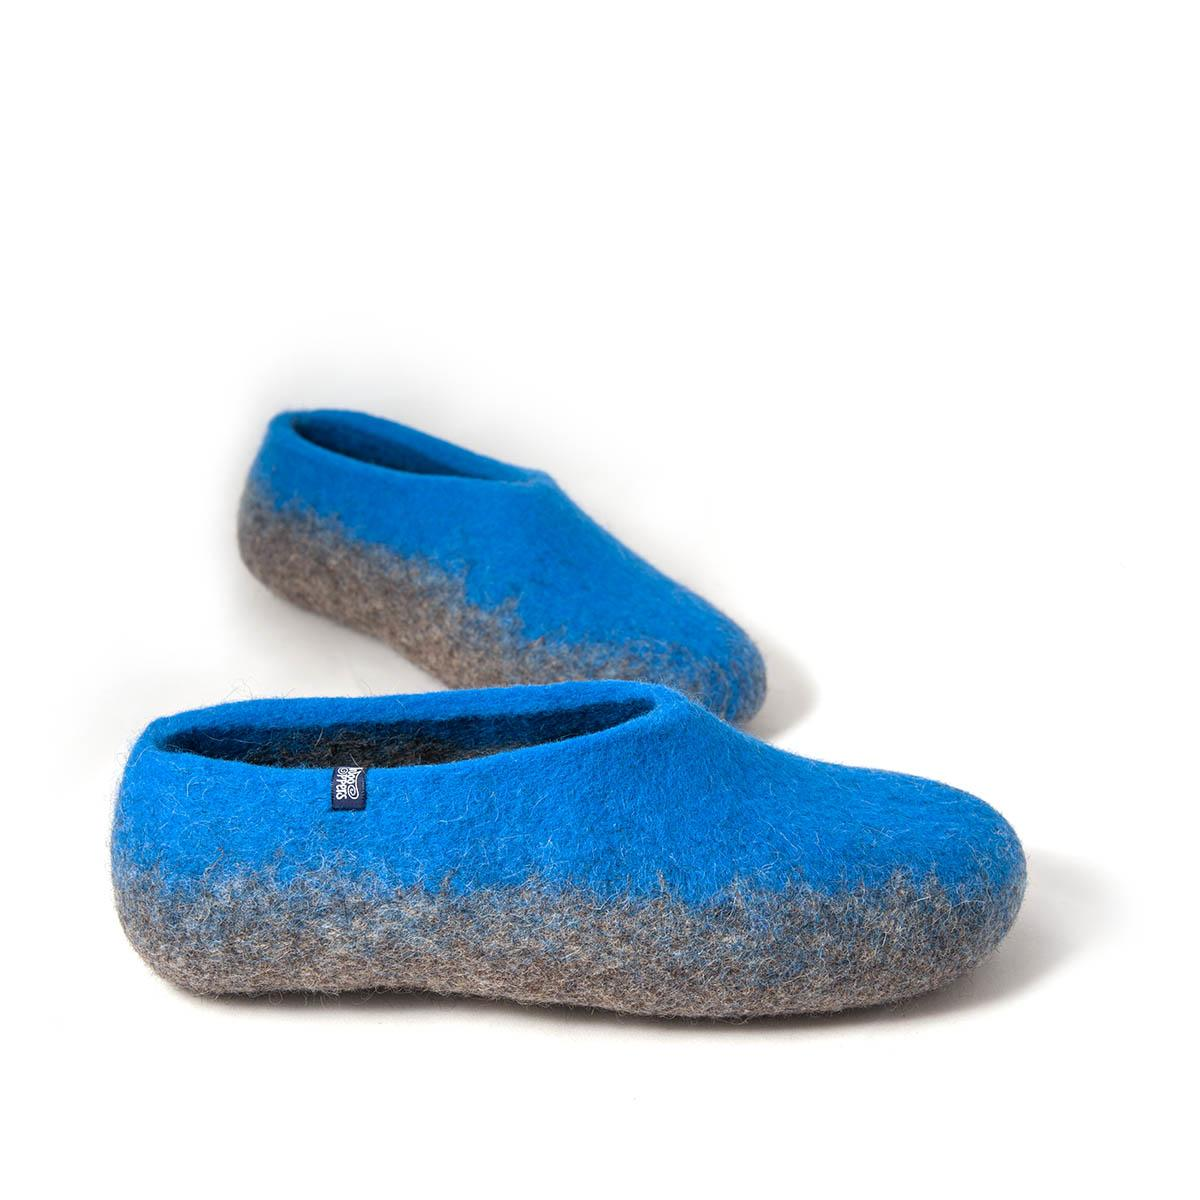 7d9213c28 mens comfortable slippers in blue - Wooppers TOPS collection -e. Next